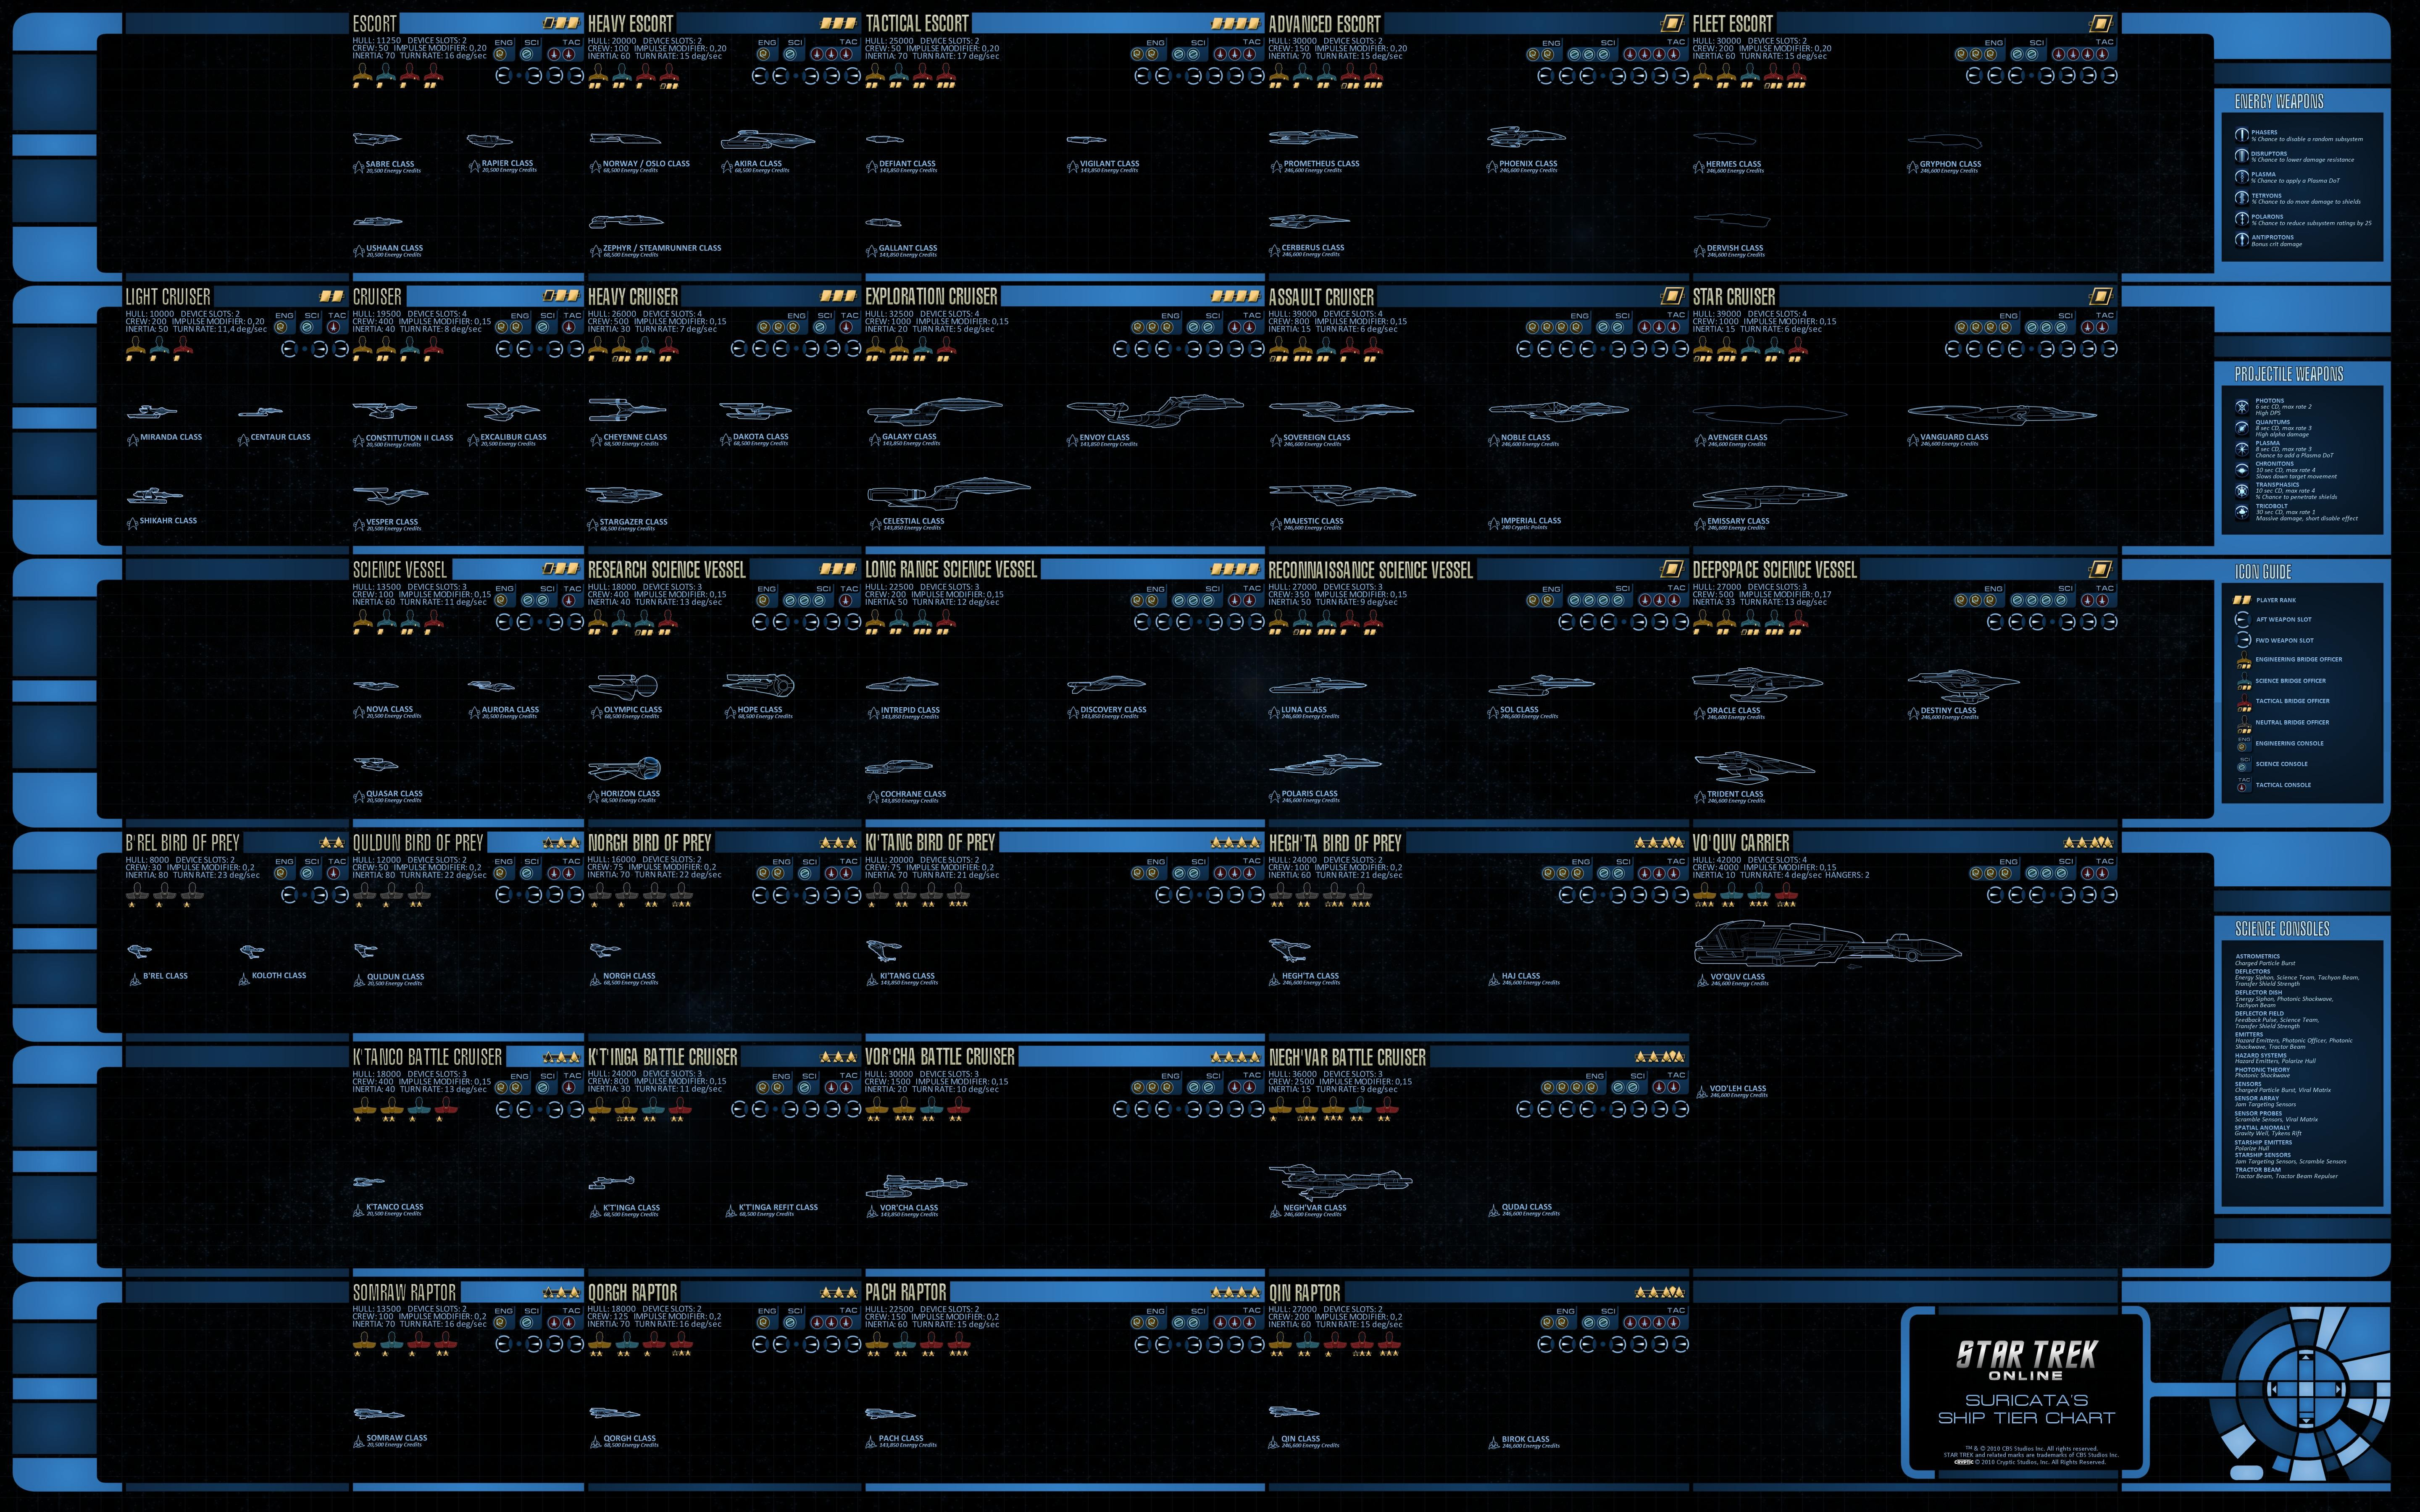 Star Trek Online Ship Tiers Chart